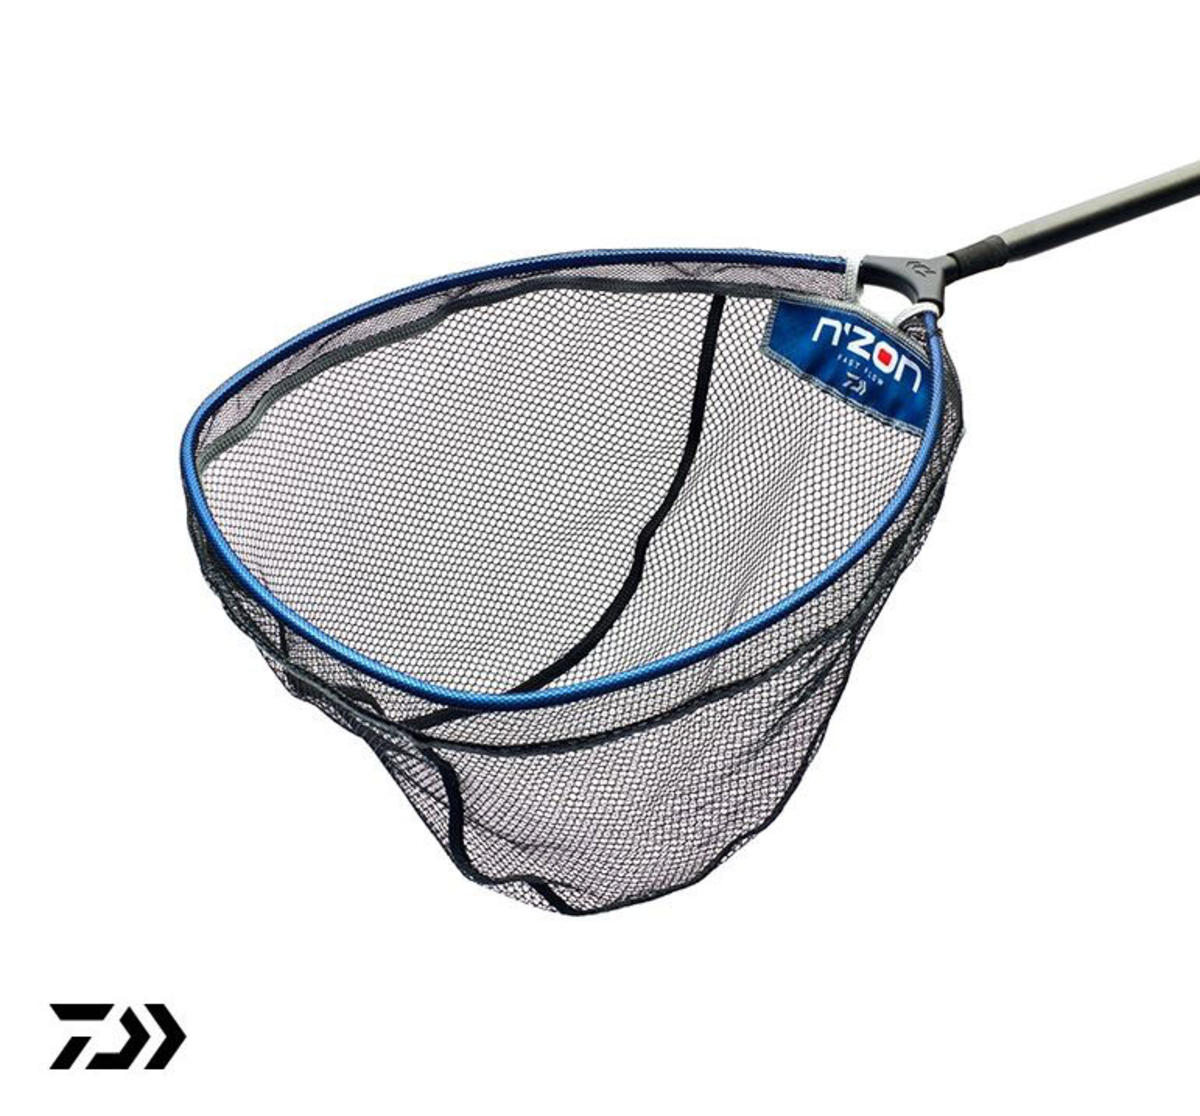 New Daiwa N'ZON Fast Flow Landing Net Heads - All Sizes Available